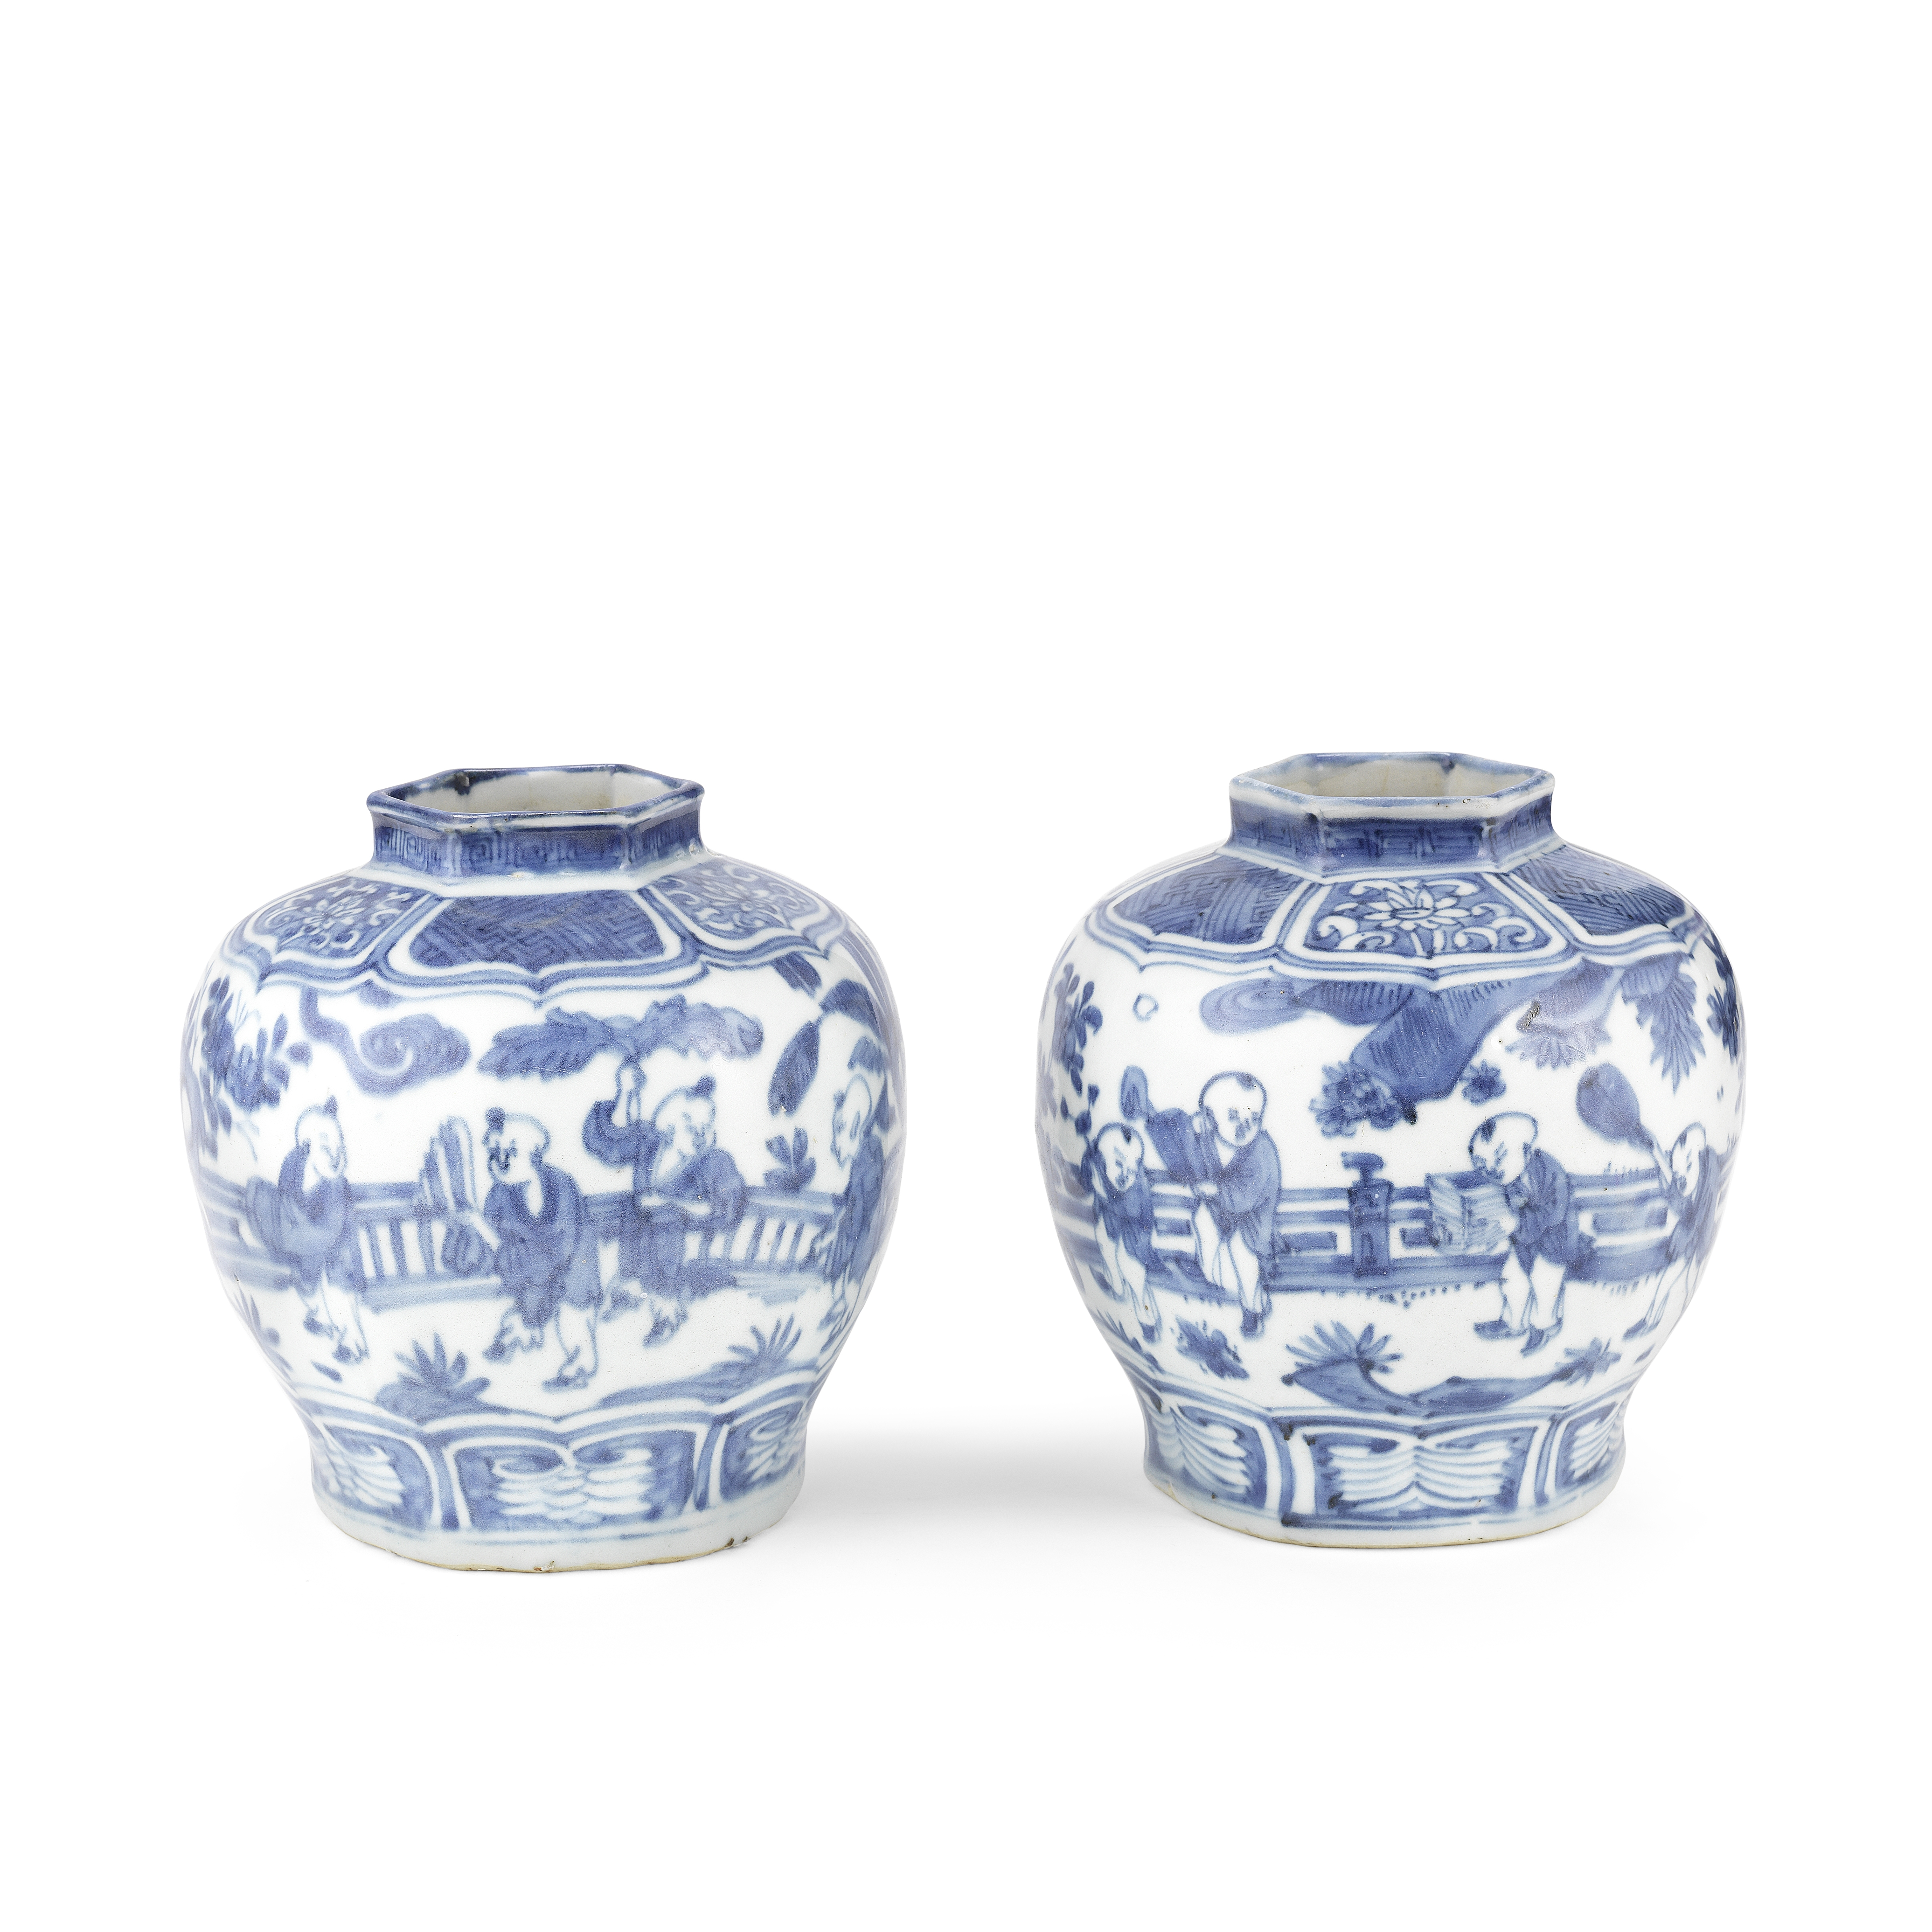 A PAIR OF BLUE AND WHITE 'BOYS' JARS Wanli (2)